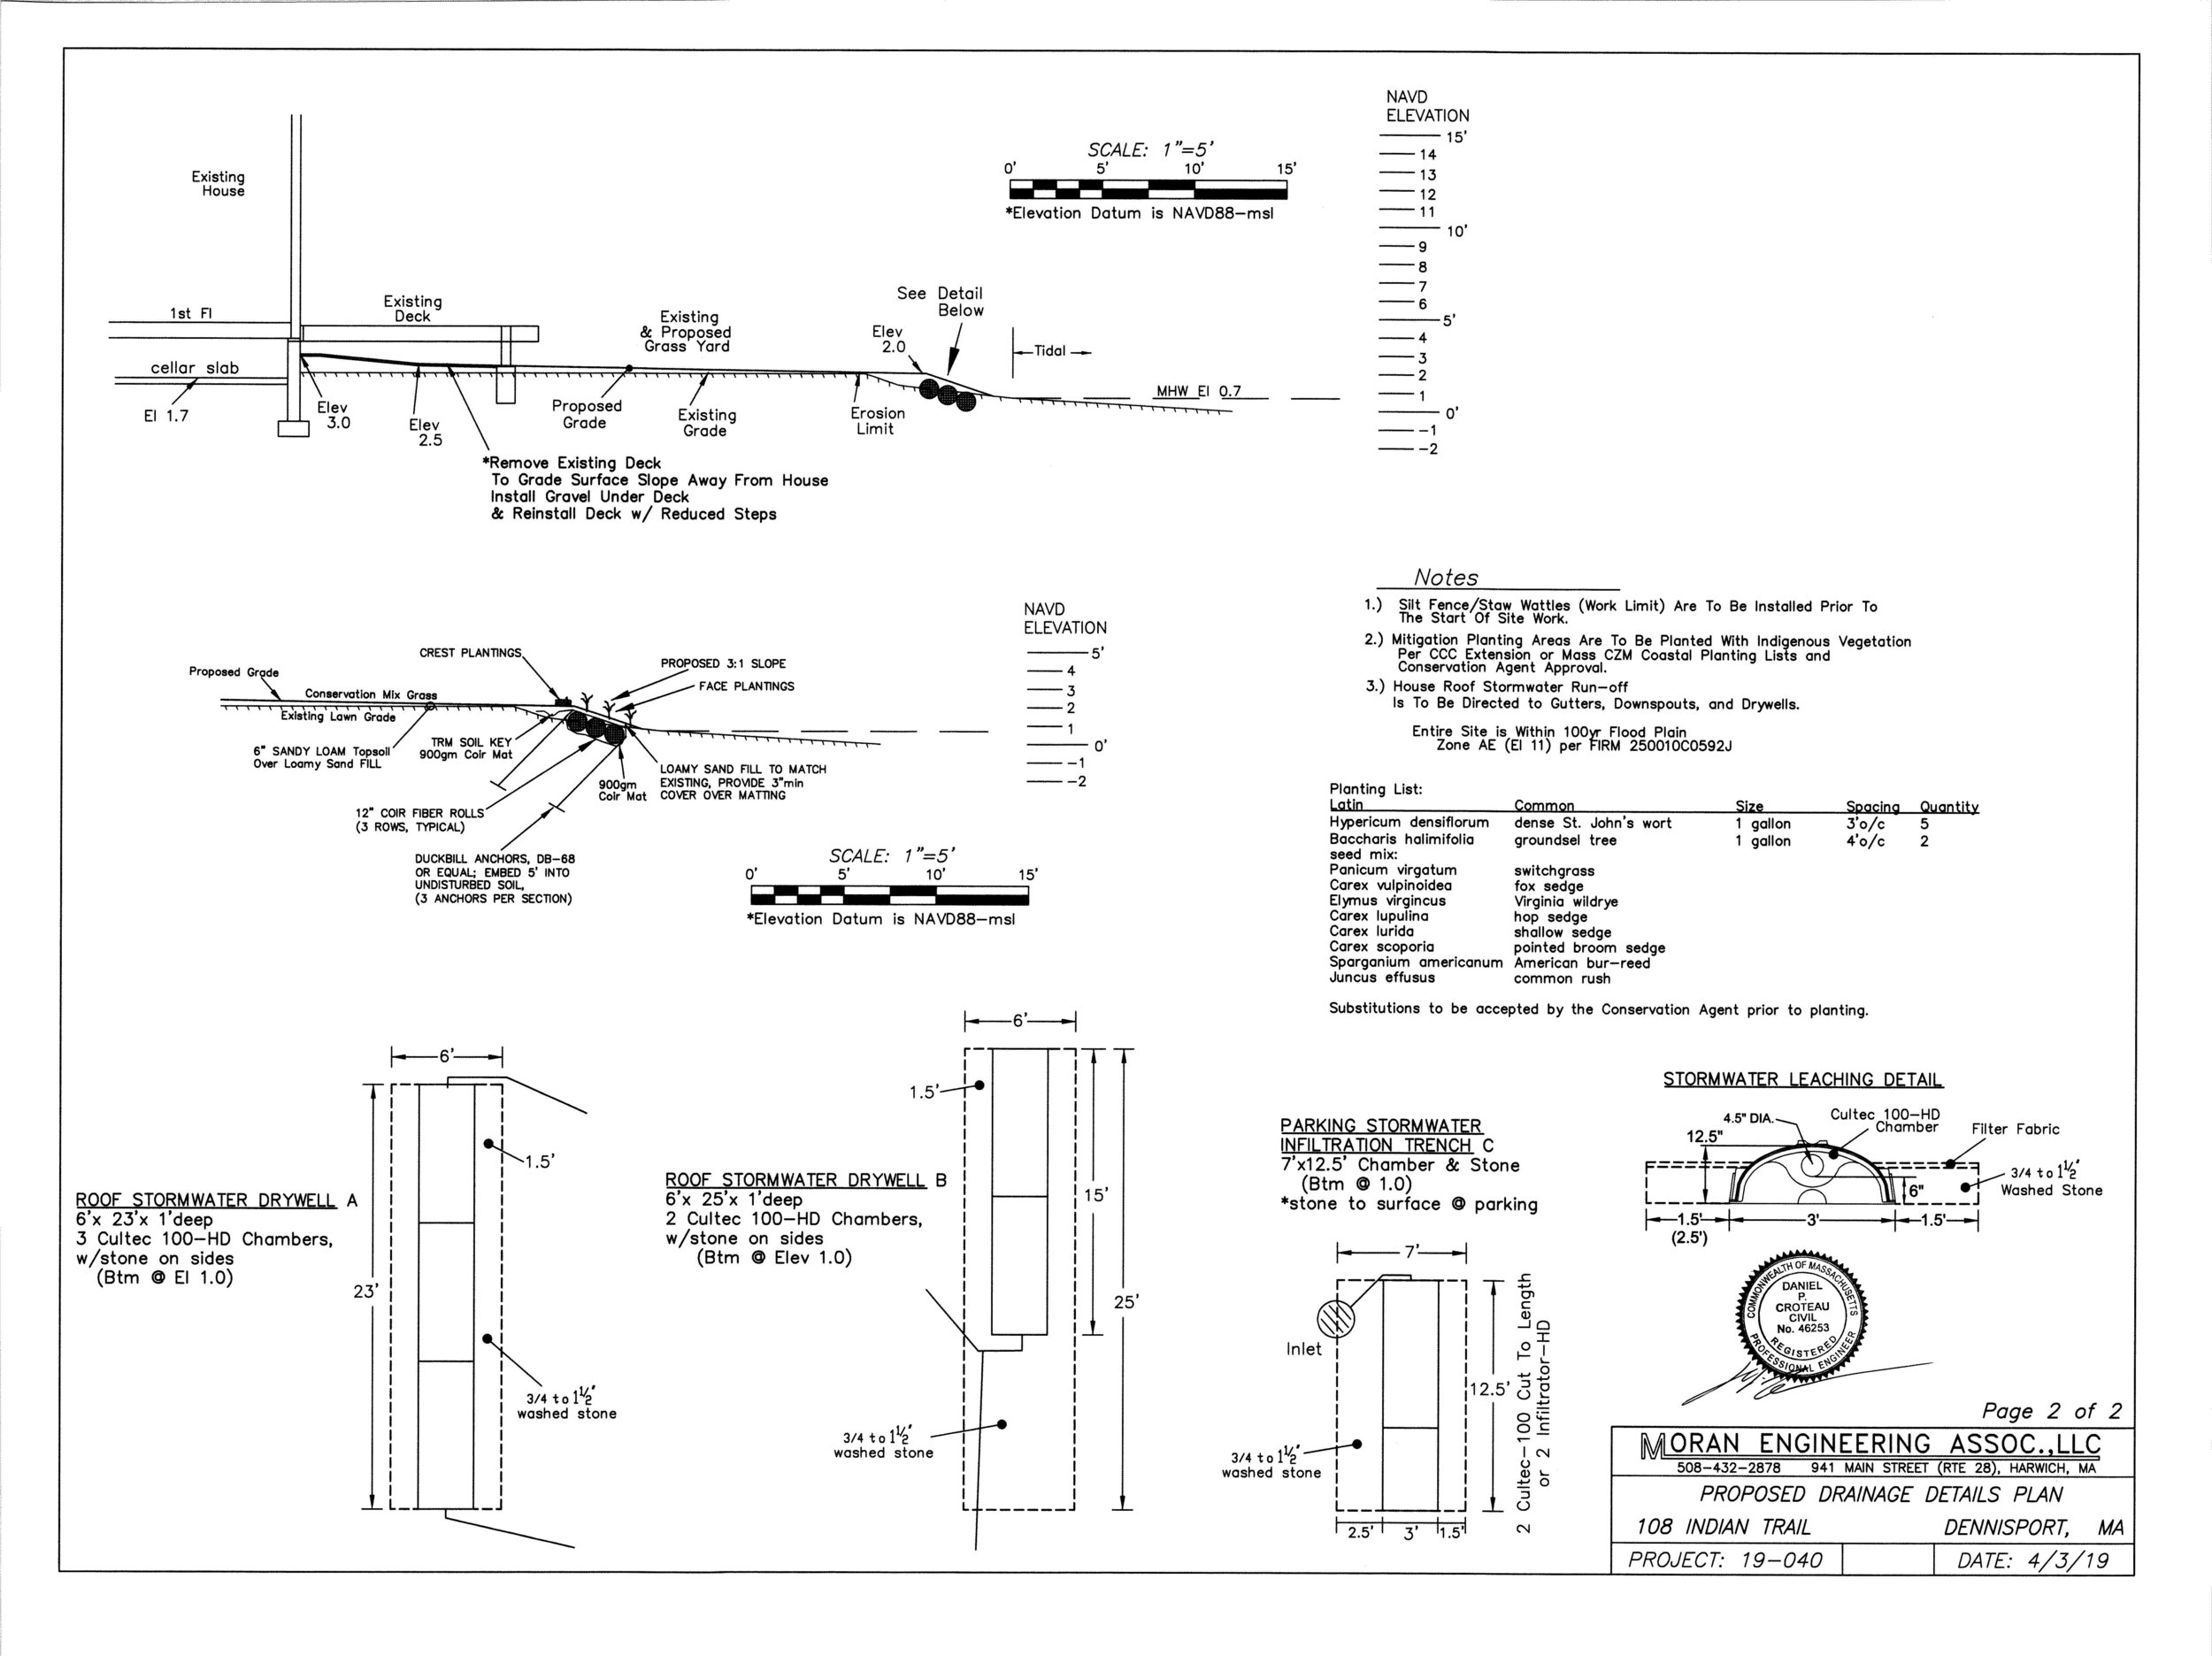 2019-04-03 2 of 2 Proposed Drainage Details Plan.jpg